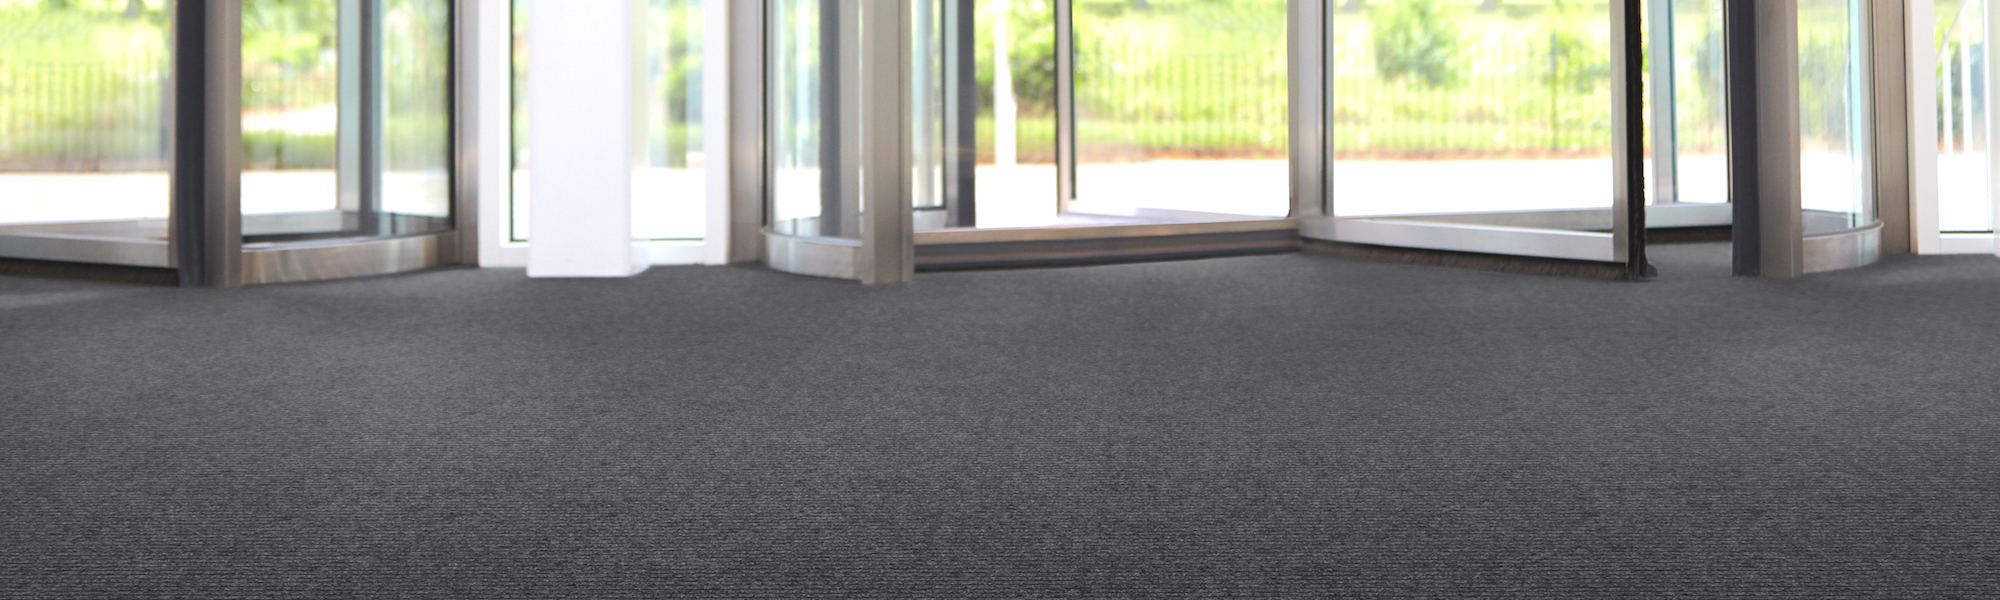 Heckmondwike FB | Commercial Carpet | Battleship/Hippo Entrance